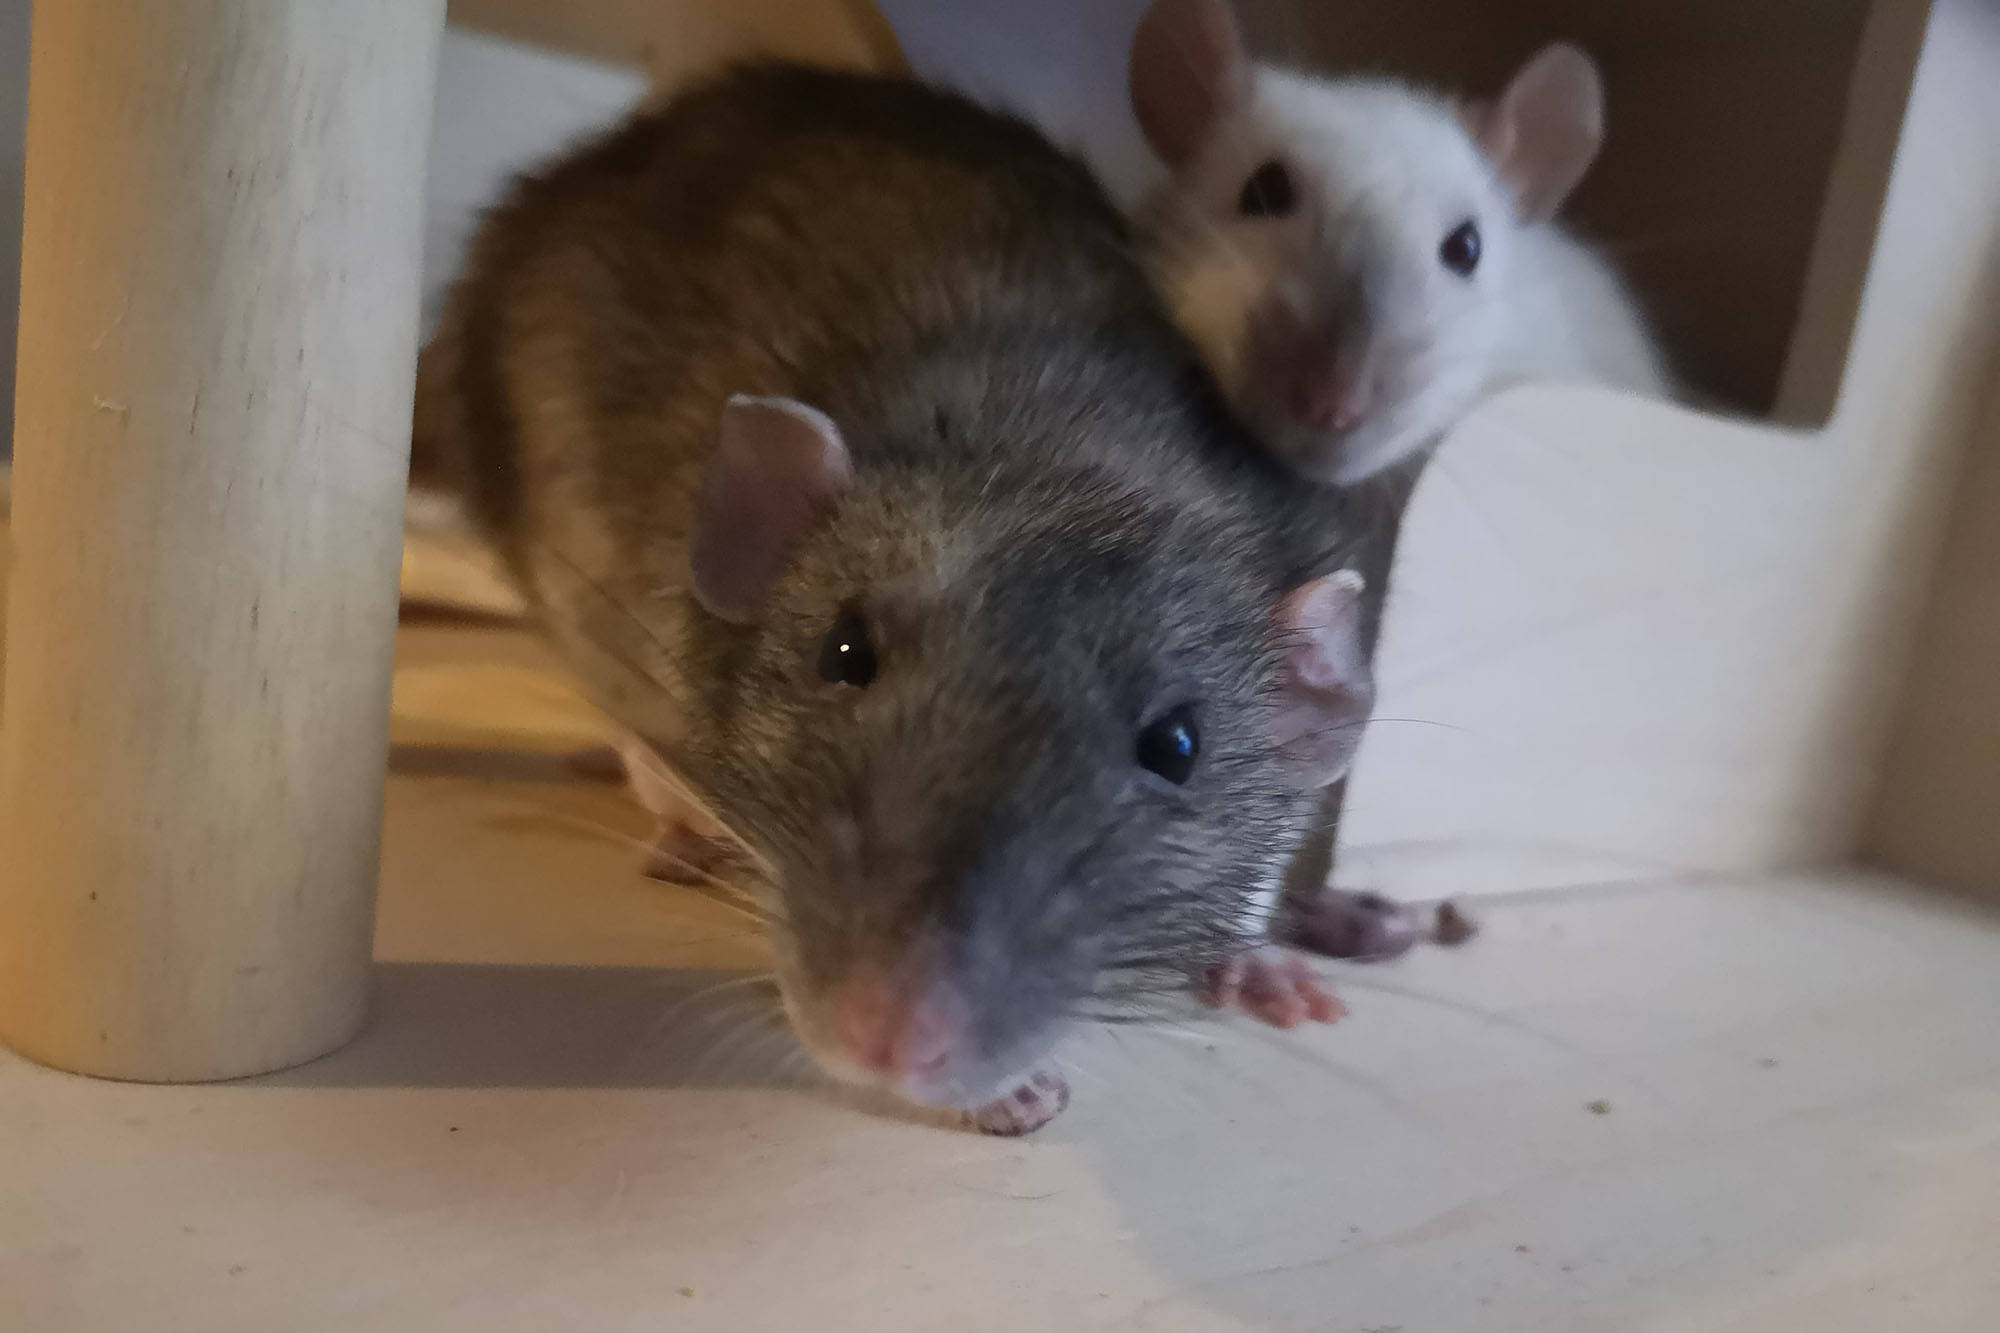 "Chelsey Johnson, 23, has been a happy ""rat mom"" for three years. She currently owns six pet rats. Here, two of her female rats Rayna (left) and Lilo (right) vie for her attention. Johnson says rats make excellent pets as they are usually affectionate with people and easy to care for. (Contributed)"